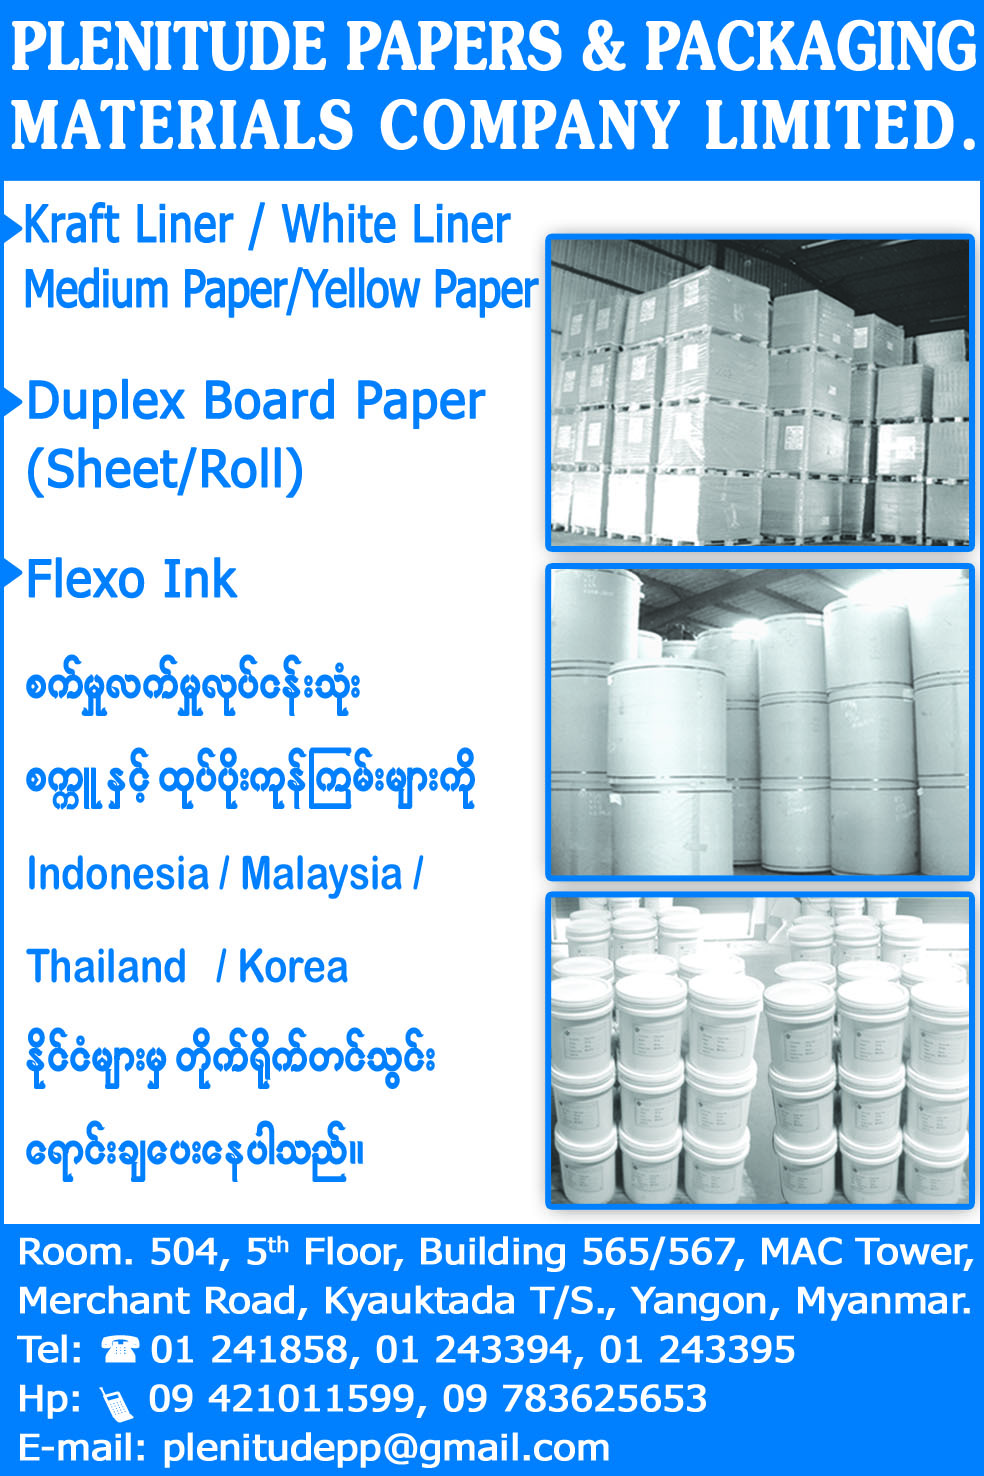 Plenitude Papers & Packaging Materials Co , Ltd  - Paper & Allied